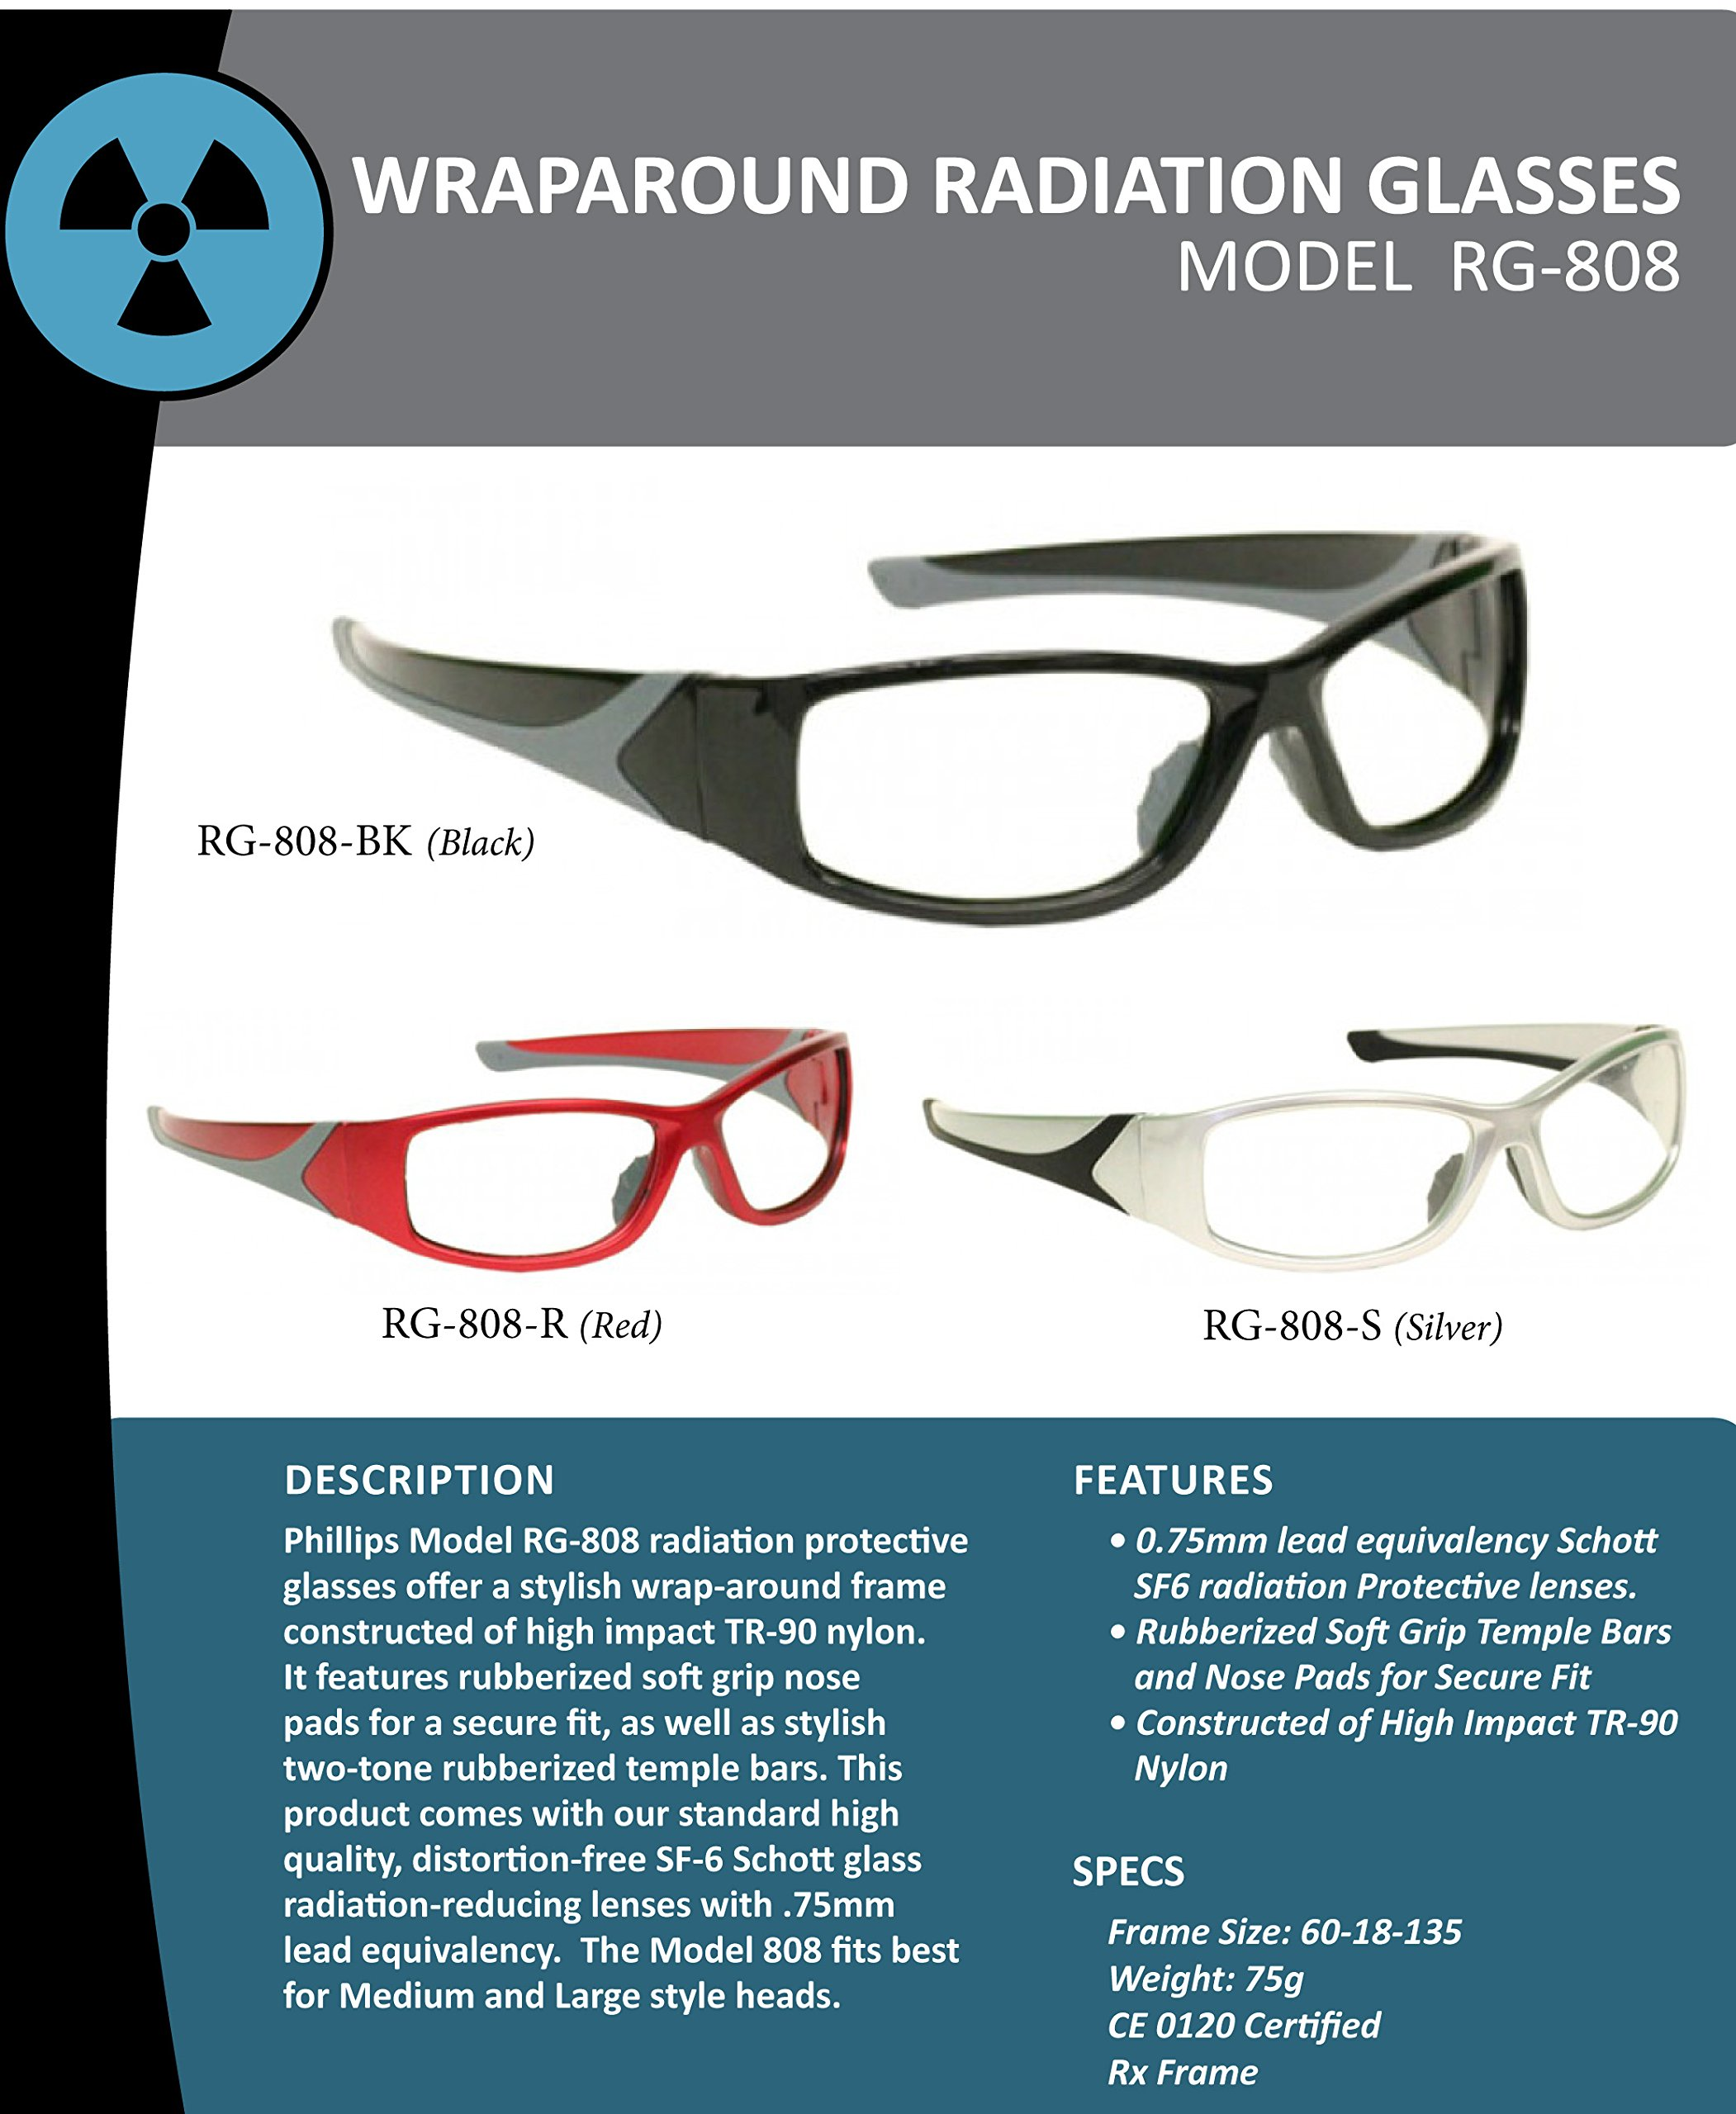 Black Wraparound X-ray Radiation Protection Lead Glasses by Schott SF-6 HT